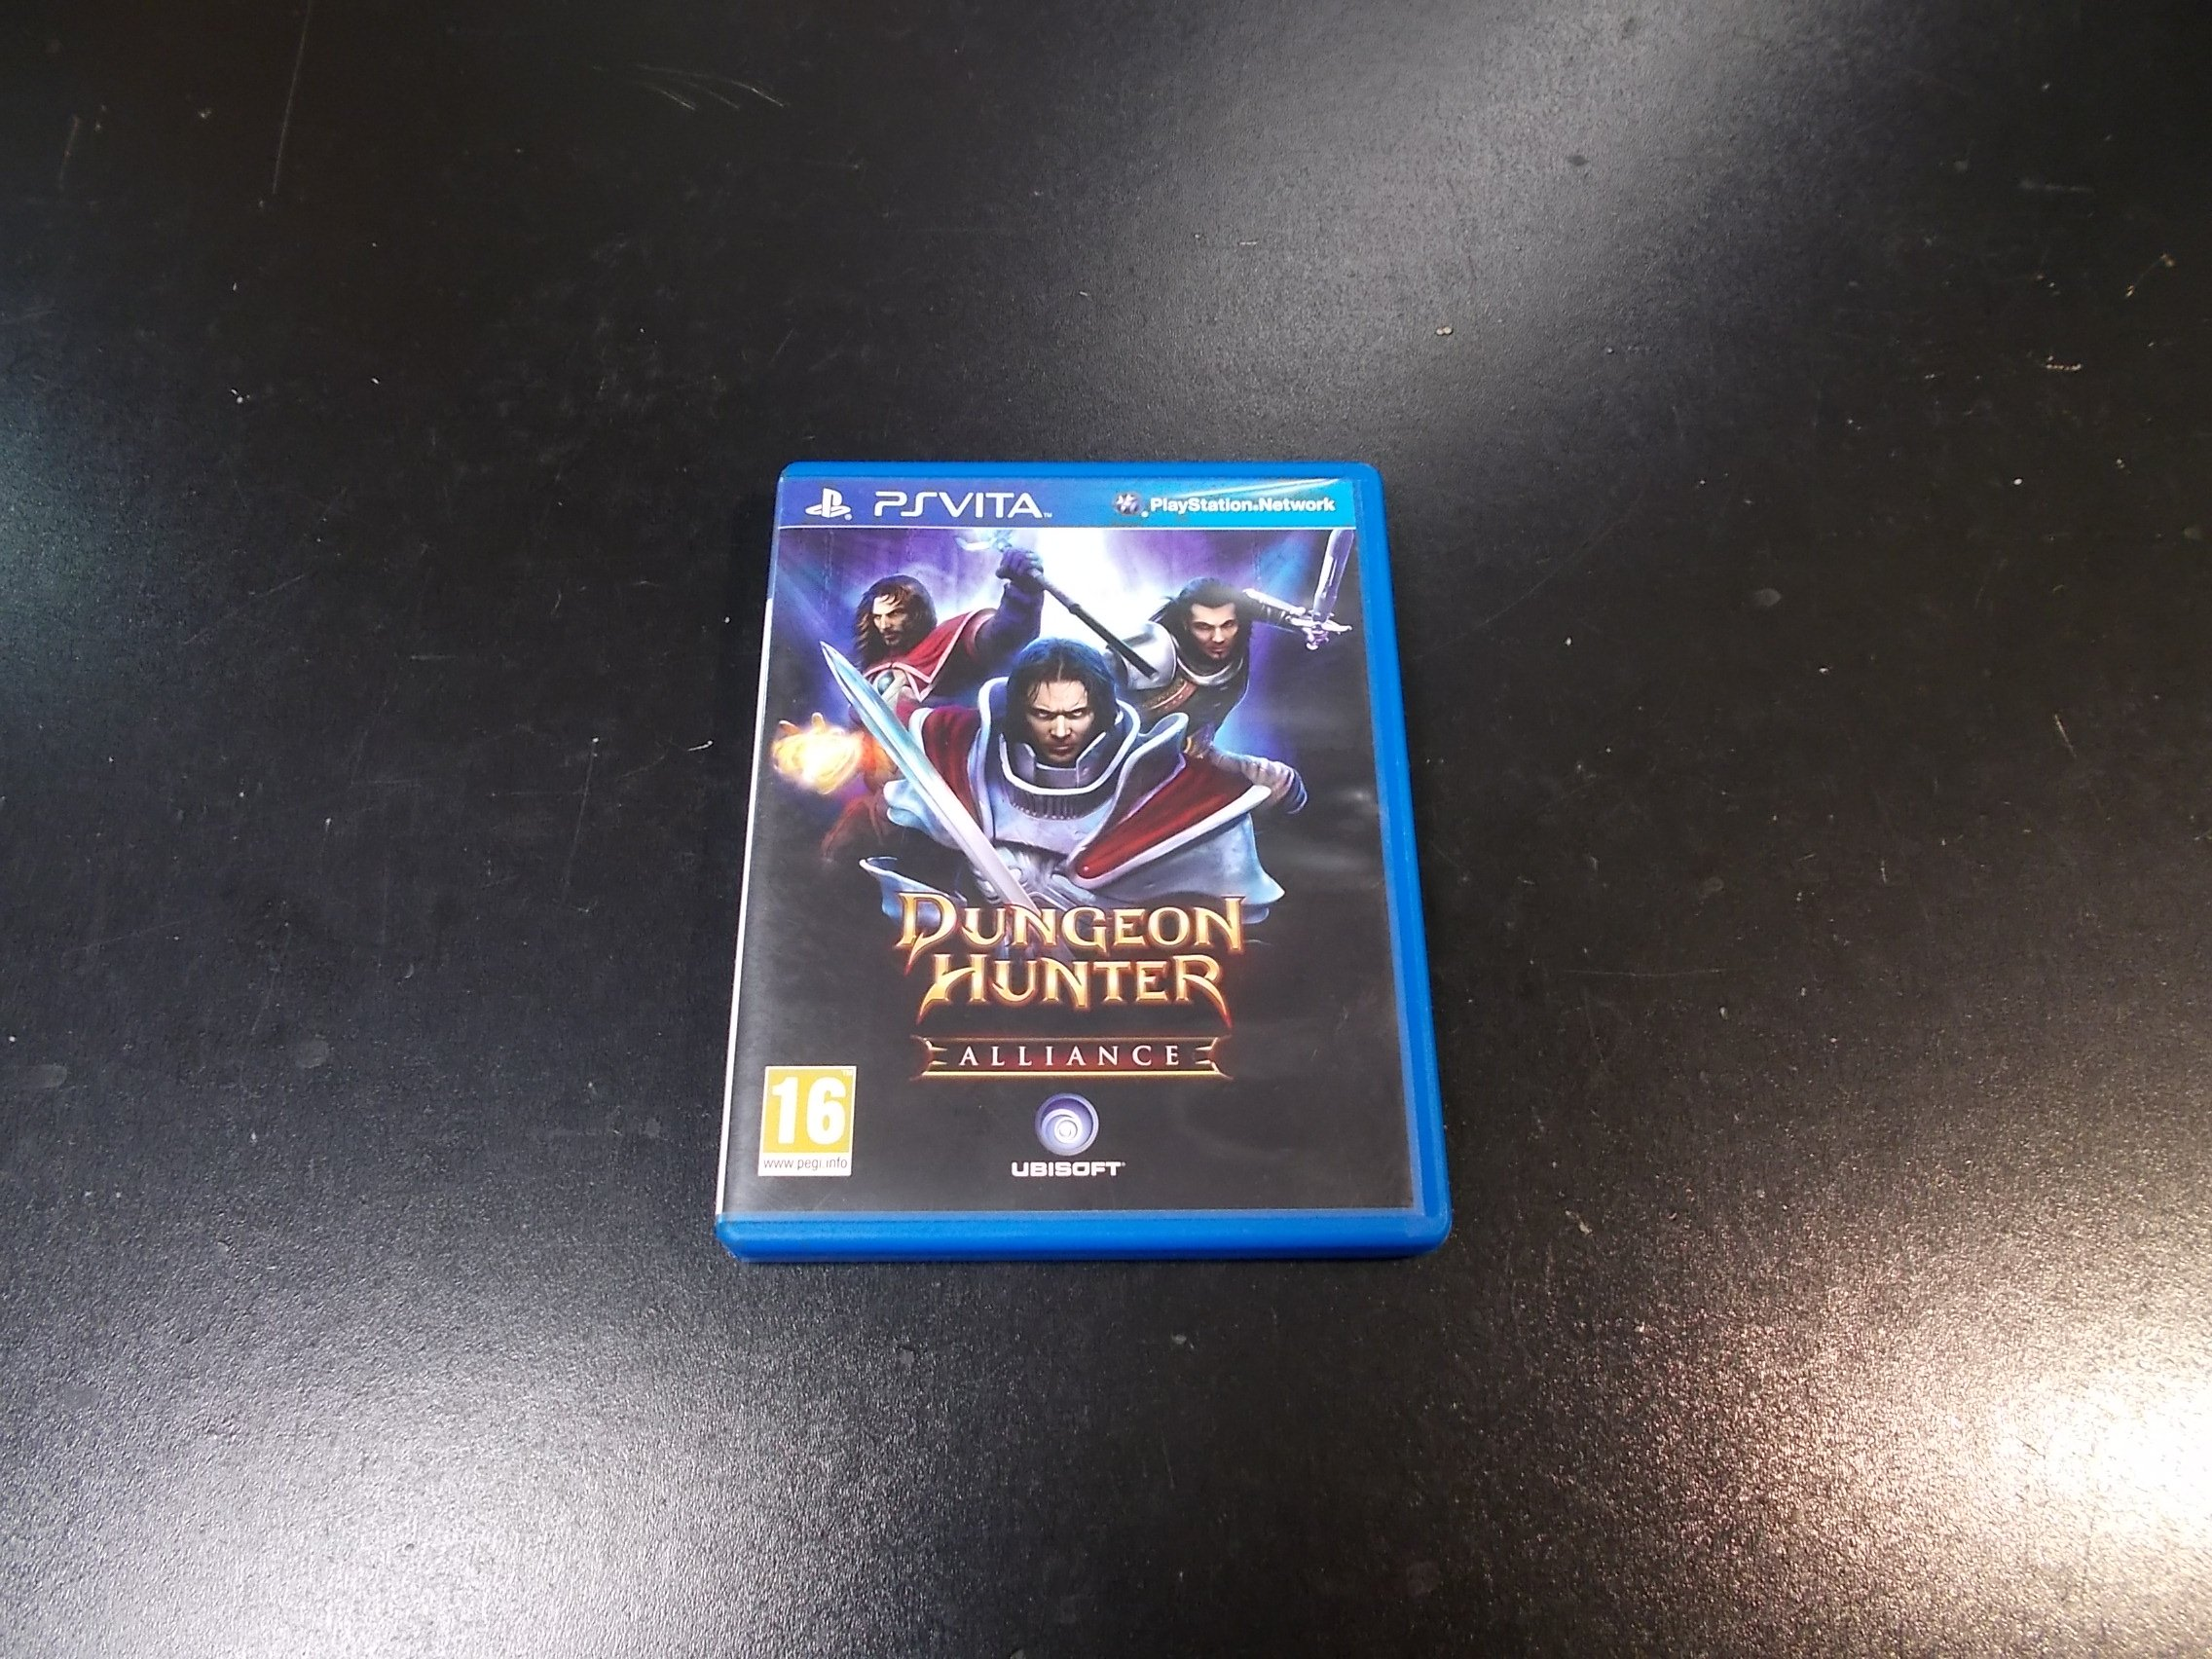 Dungeon Hunter Alliance - GRA Ps Vita Sklep